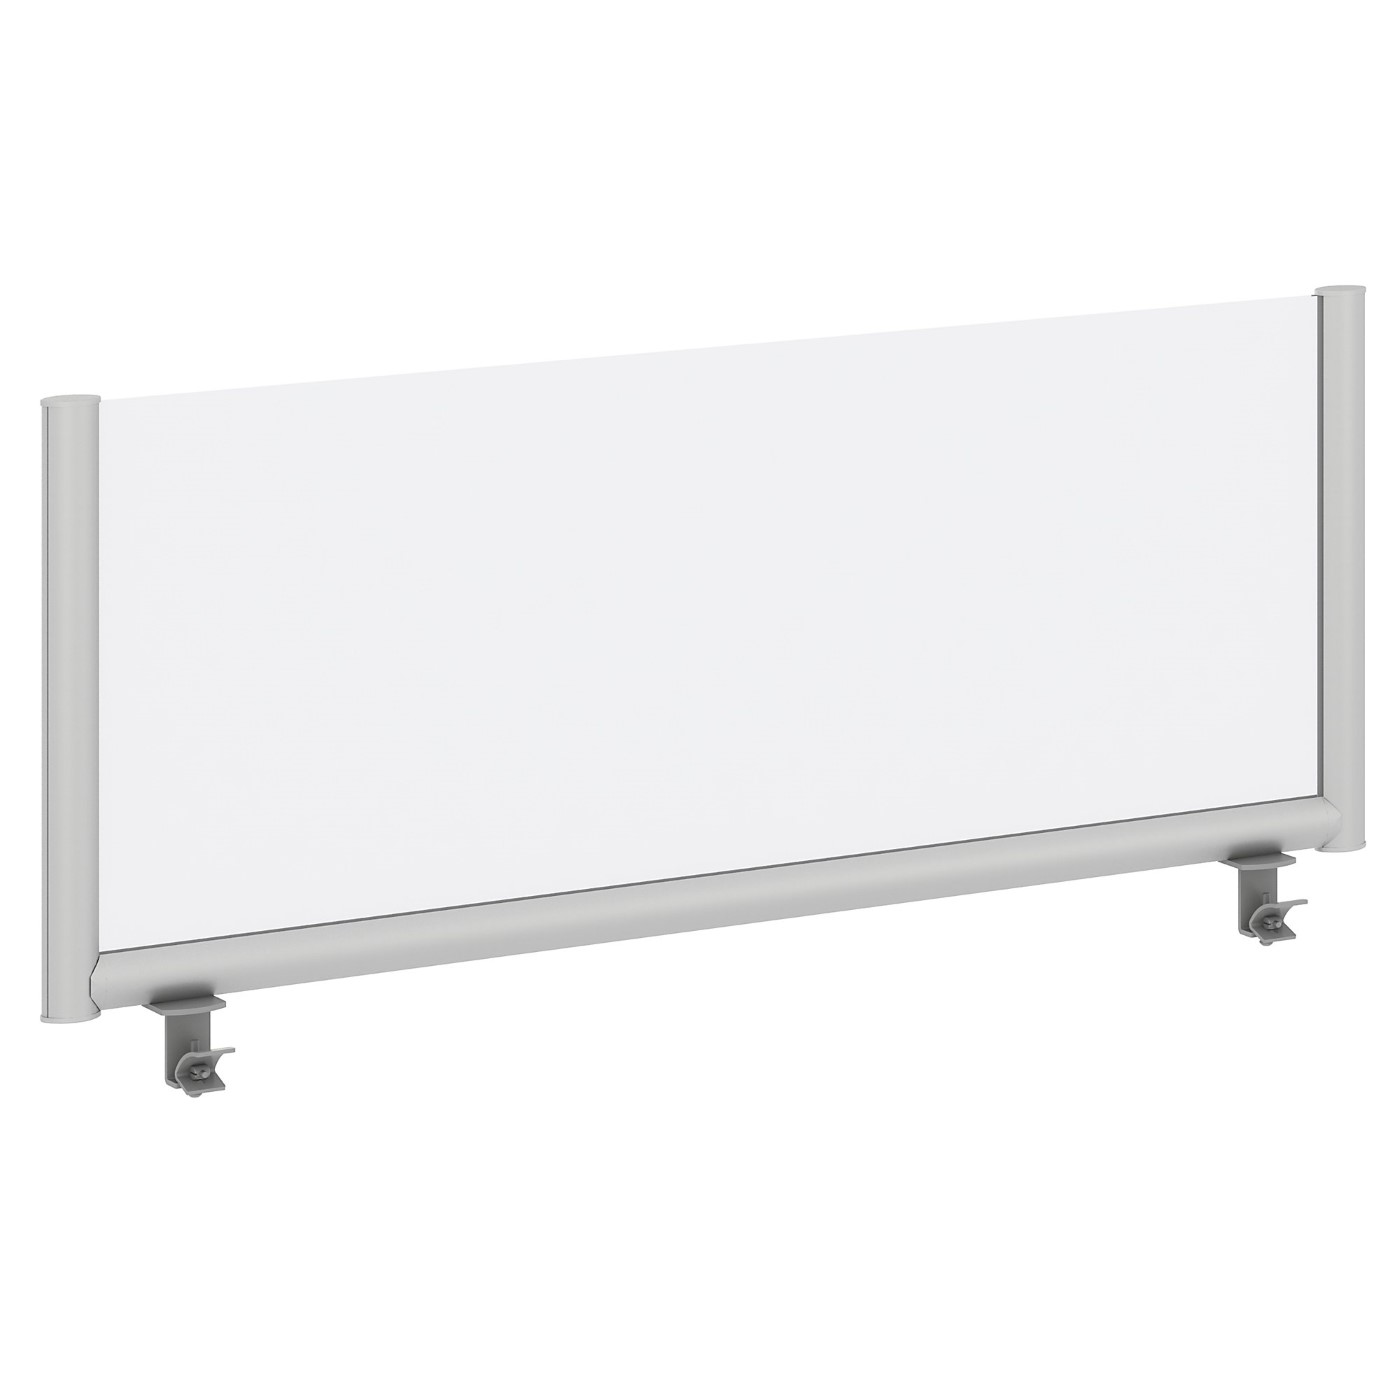 BUSH BUSINESS FURNITURE 48W DESK DIVIDER PRIVACY PANEL. FREE SHIPPING SALE DEDUCT 10% MORE ENTER '10percent' IN COUPON CODE BOX WHILE CHECKING OUT. ENDS 5-31-20.